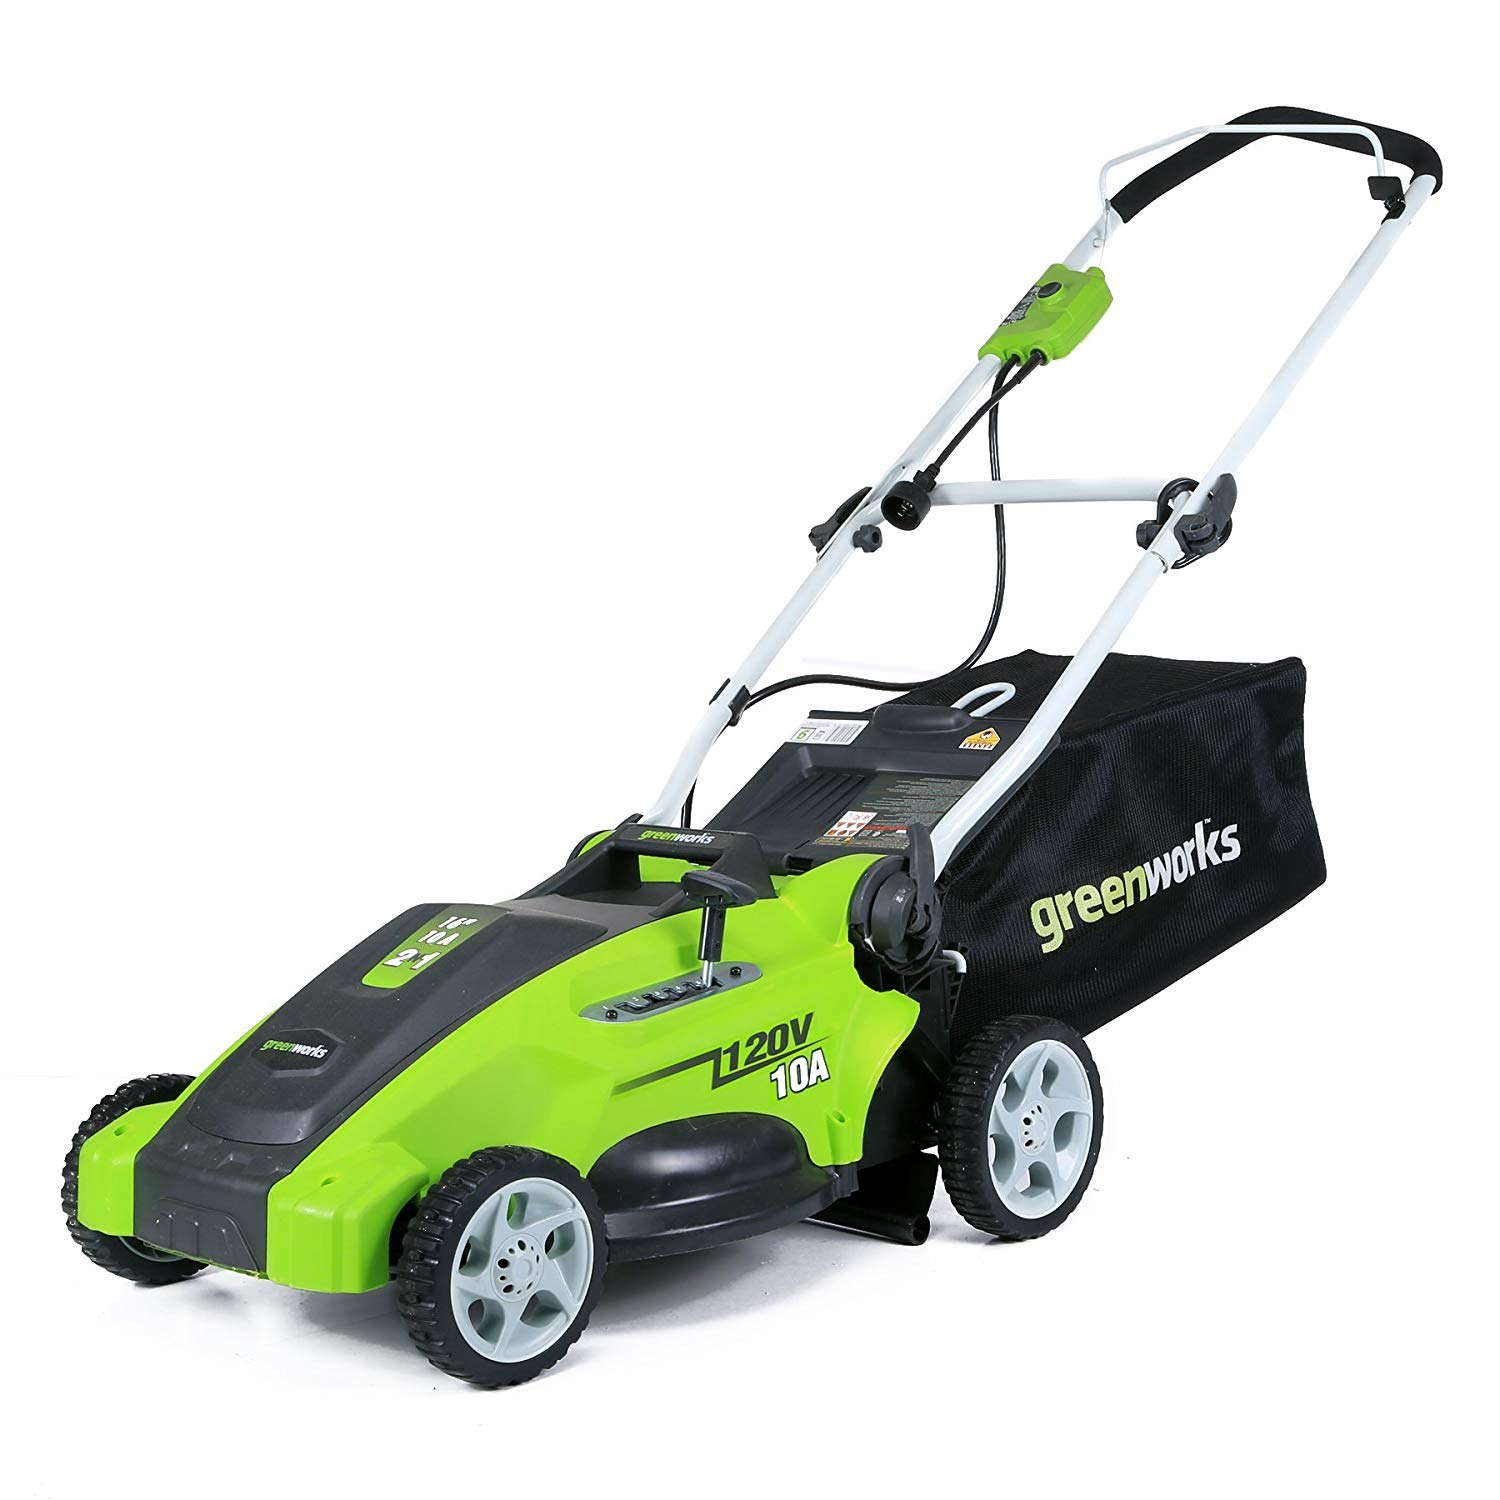 10 Amp Corded Electric Lawn Mower By Greenworks